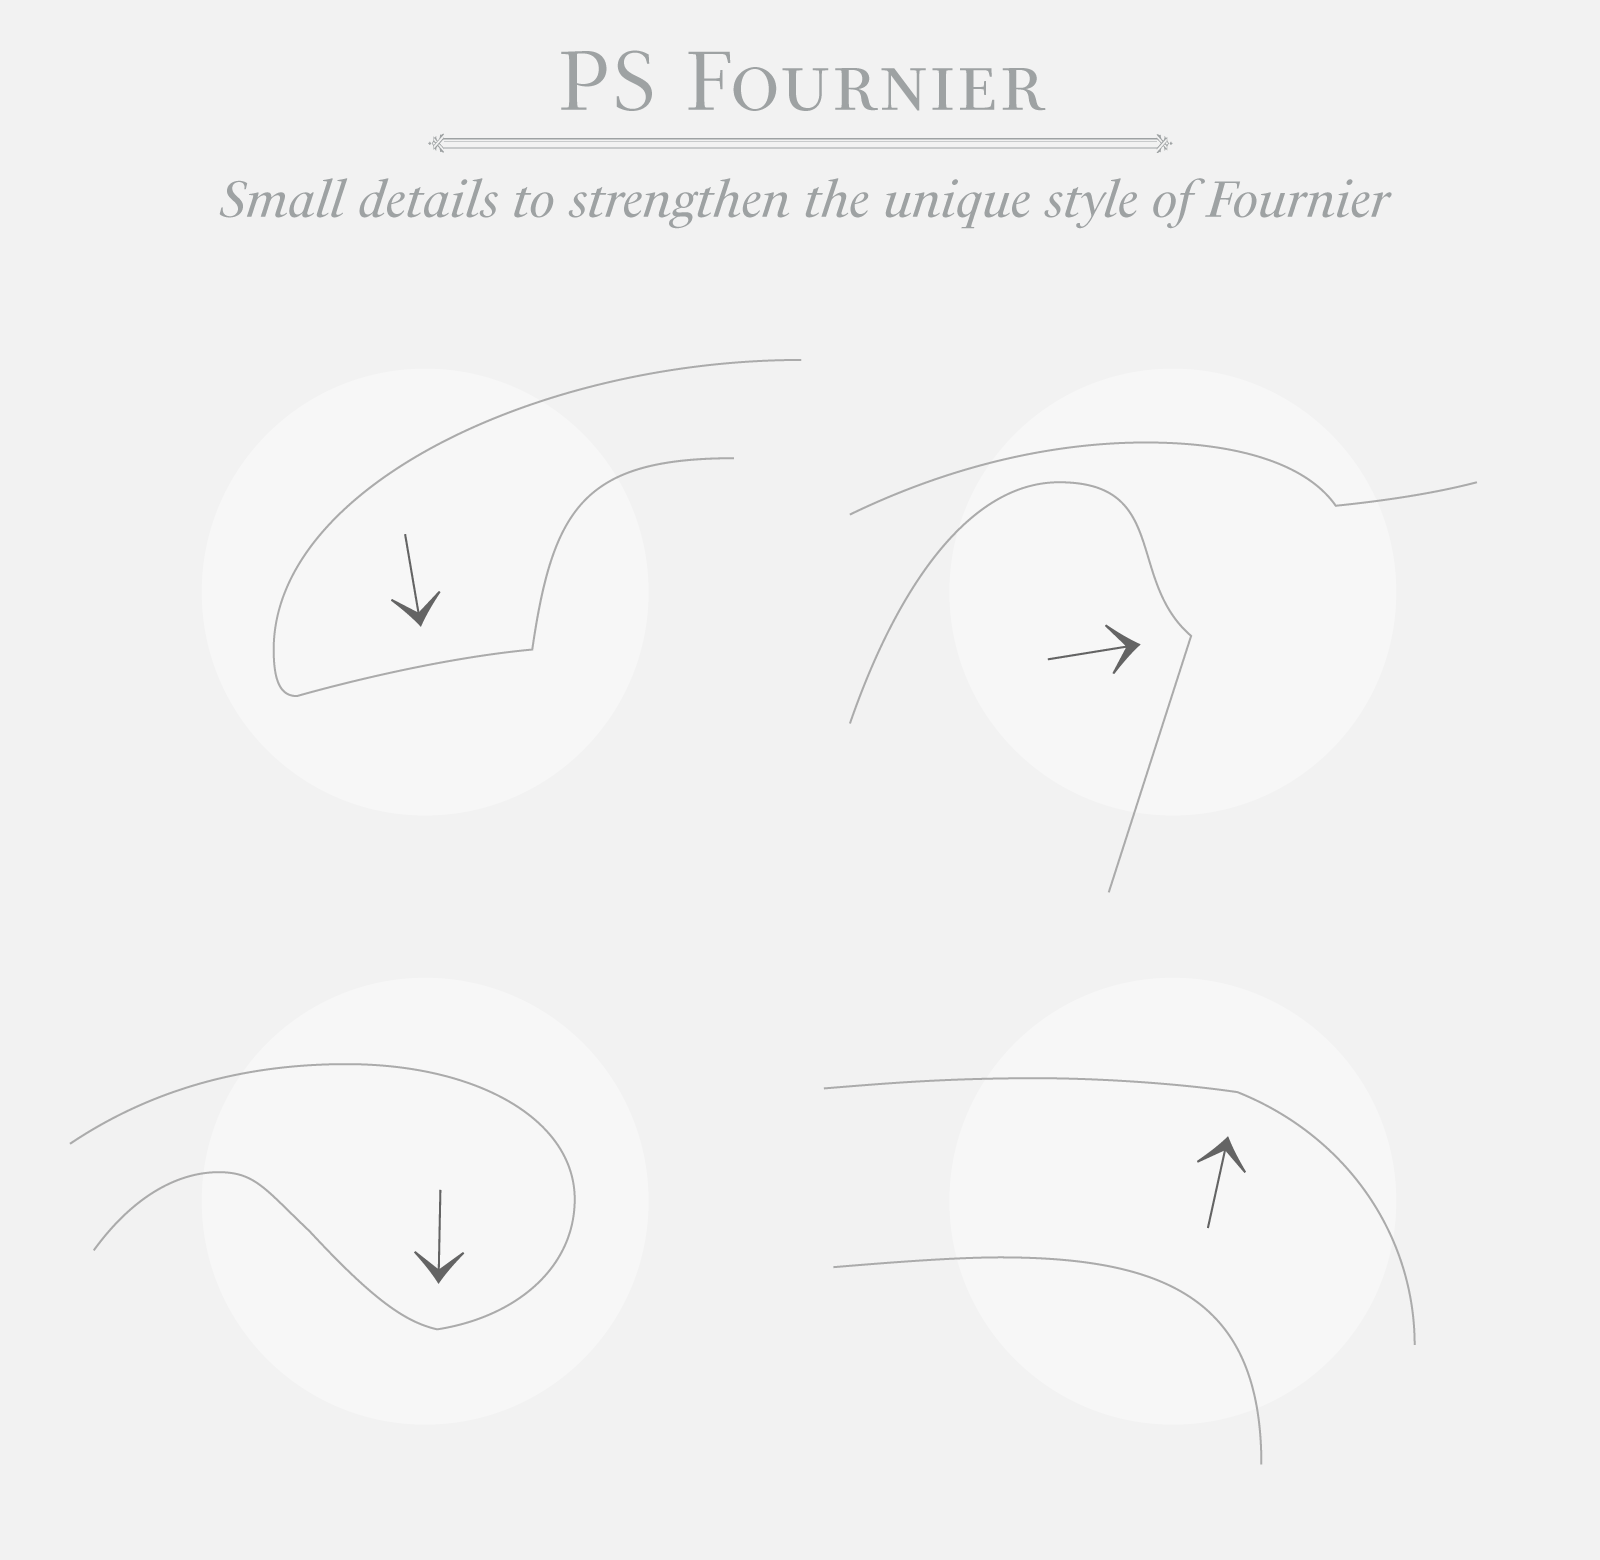 ps-fournier-details, Typofonderie Gazette